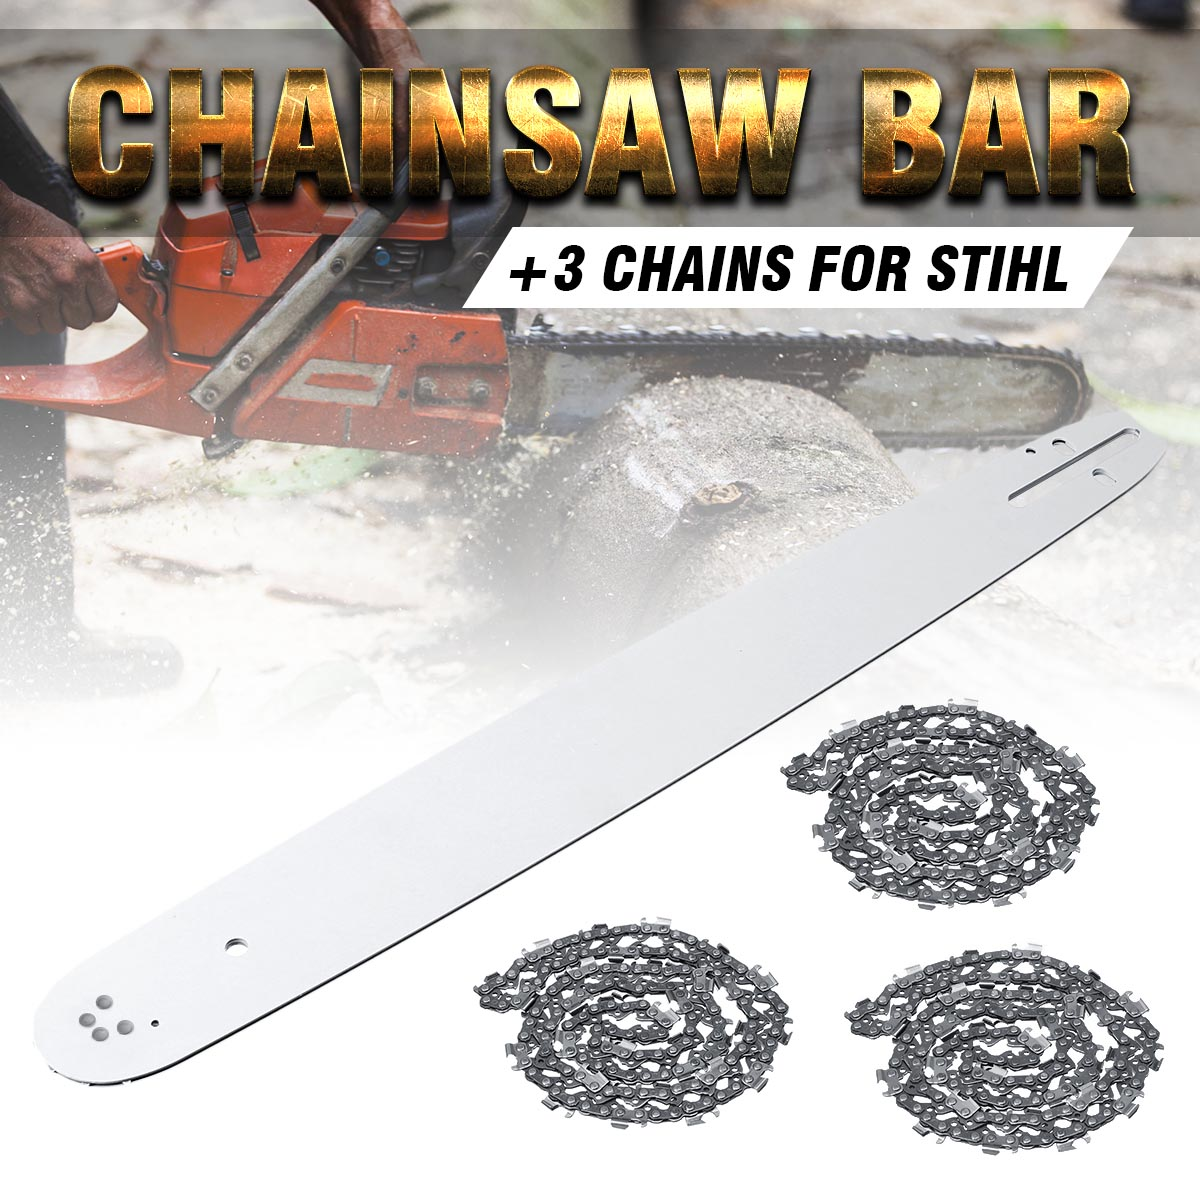 20 Inch Chainsaw Guide Bar with 3pcs Saw Chain 3/8 72DL .63 For STIHL MS290 MS291-310-340-360-380-391-440 Accessories20 Inch Chainsaw Guide Bar with 3pcs Saw Chain 3/8 72DL .63 For STIHL MS290 MS291-310-340-360-380-391-440 Accessories